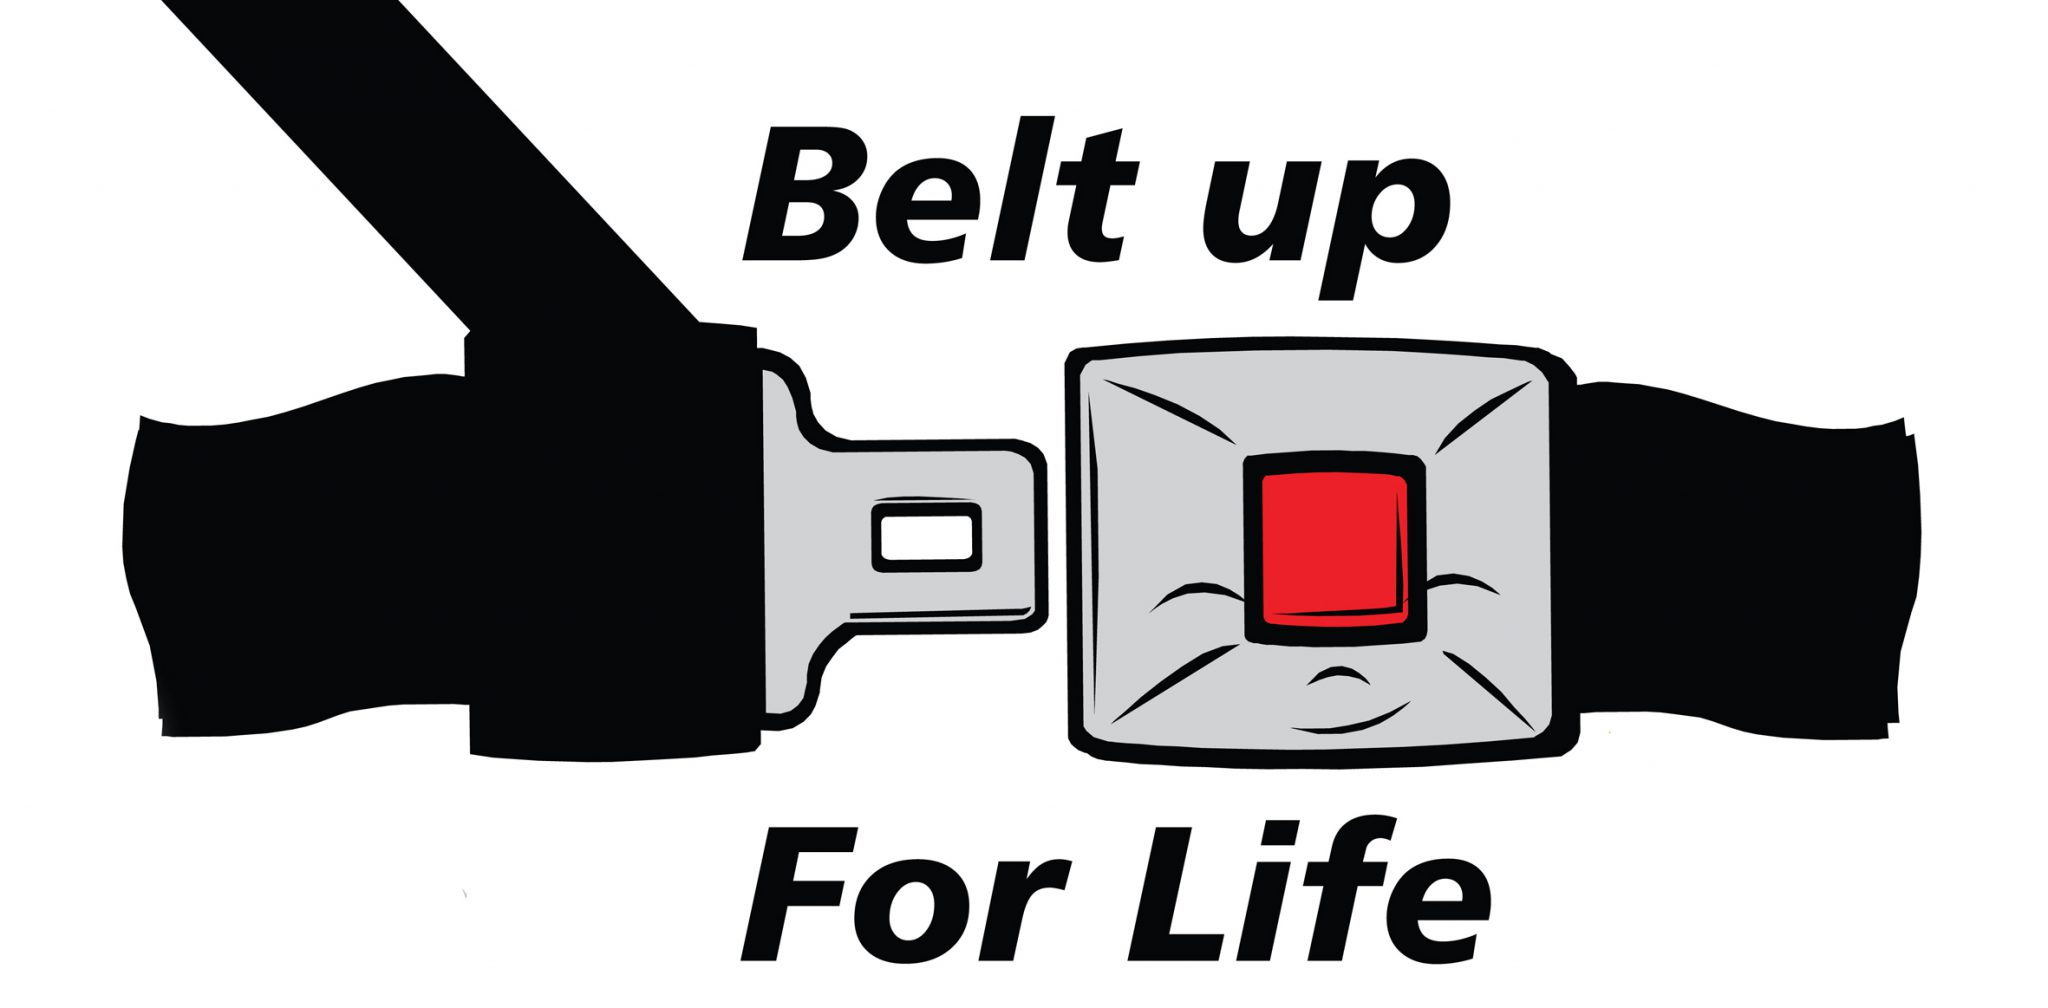 importance of wearing seatbelts Cdc: hundreds of truckers die annually from not wearing seatbelt 33 percent of truckers who died in 2012 crashes had skipped seat belts, but up to 40 percent would have lived if they had buckled .